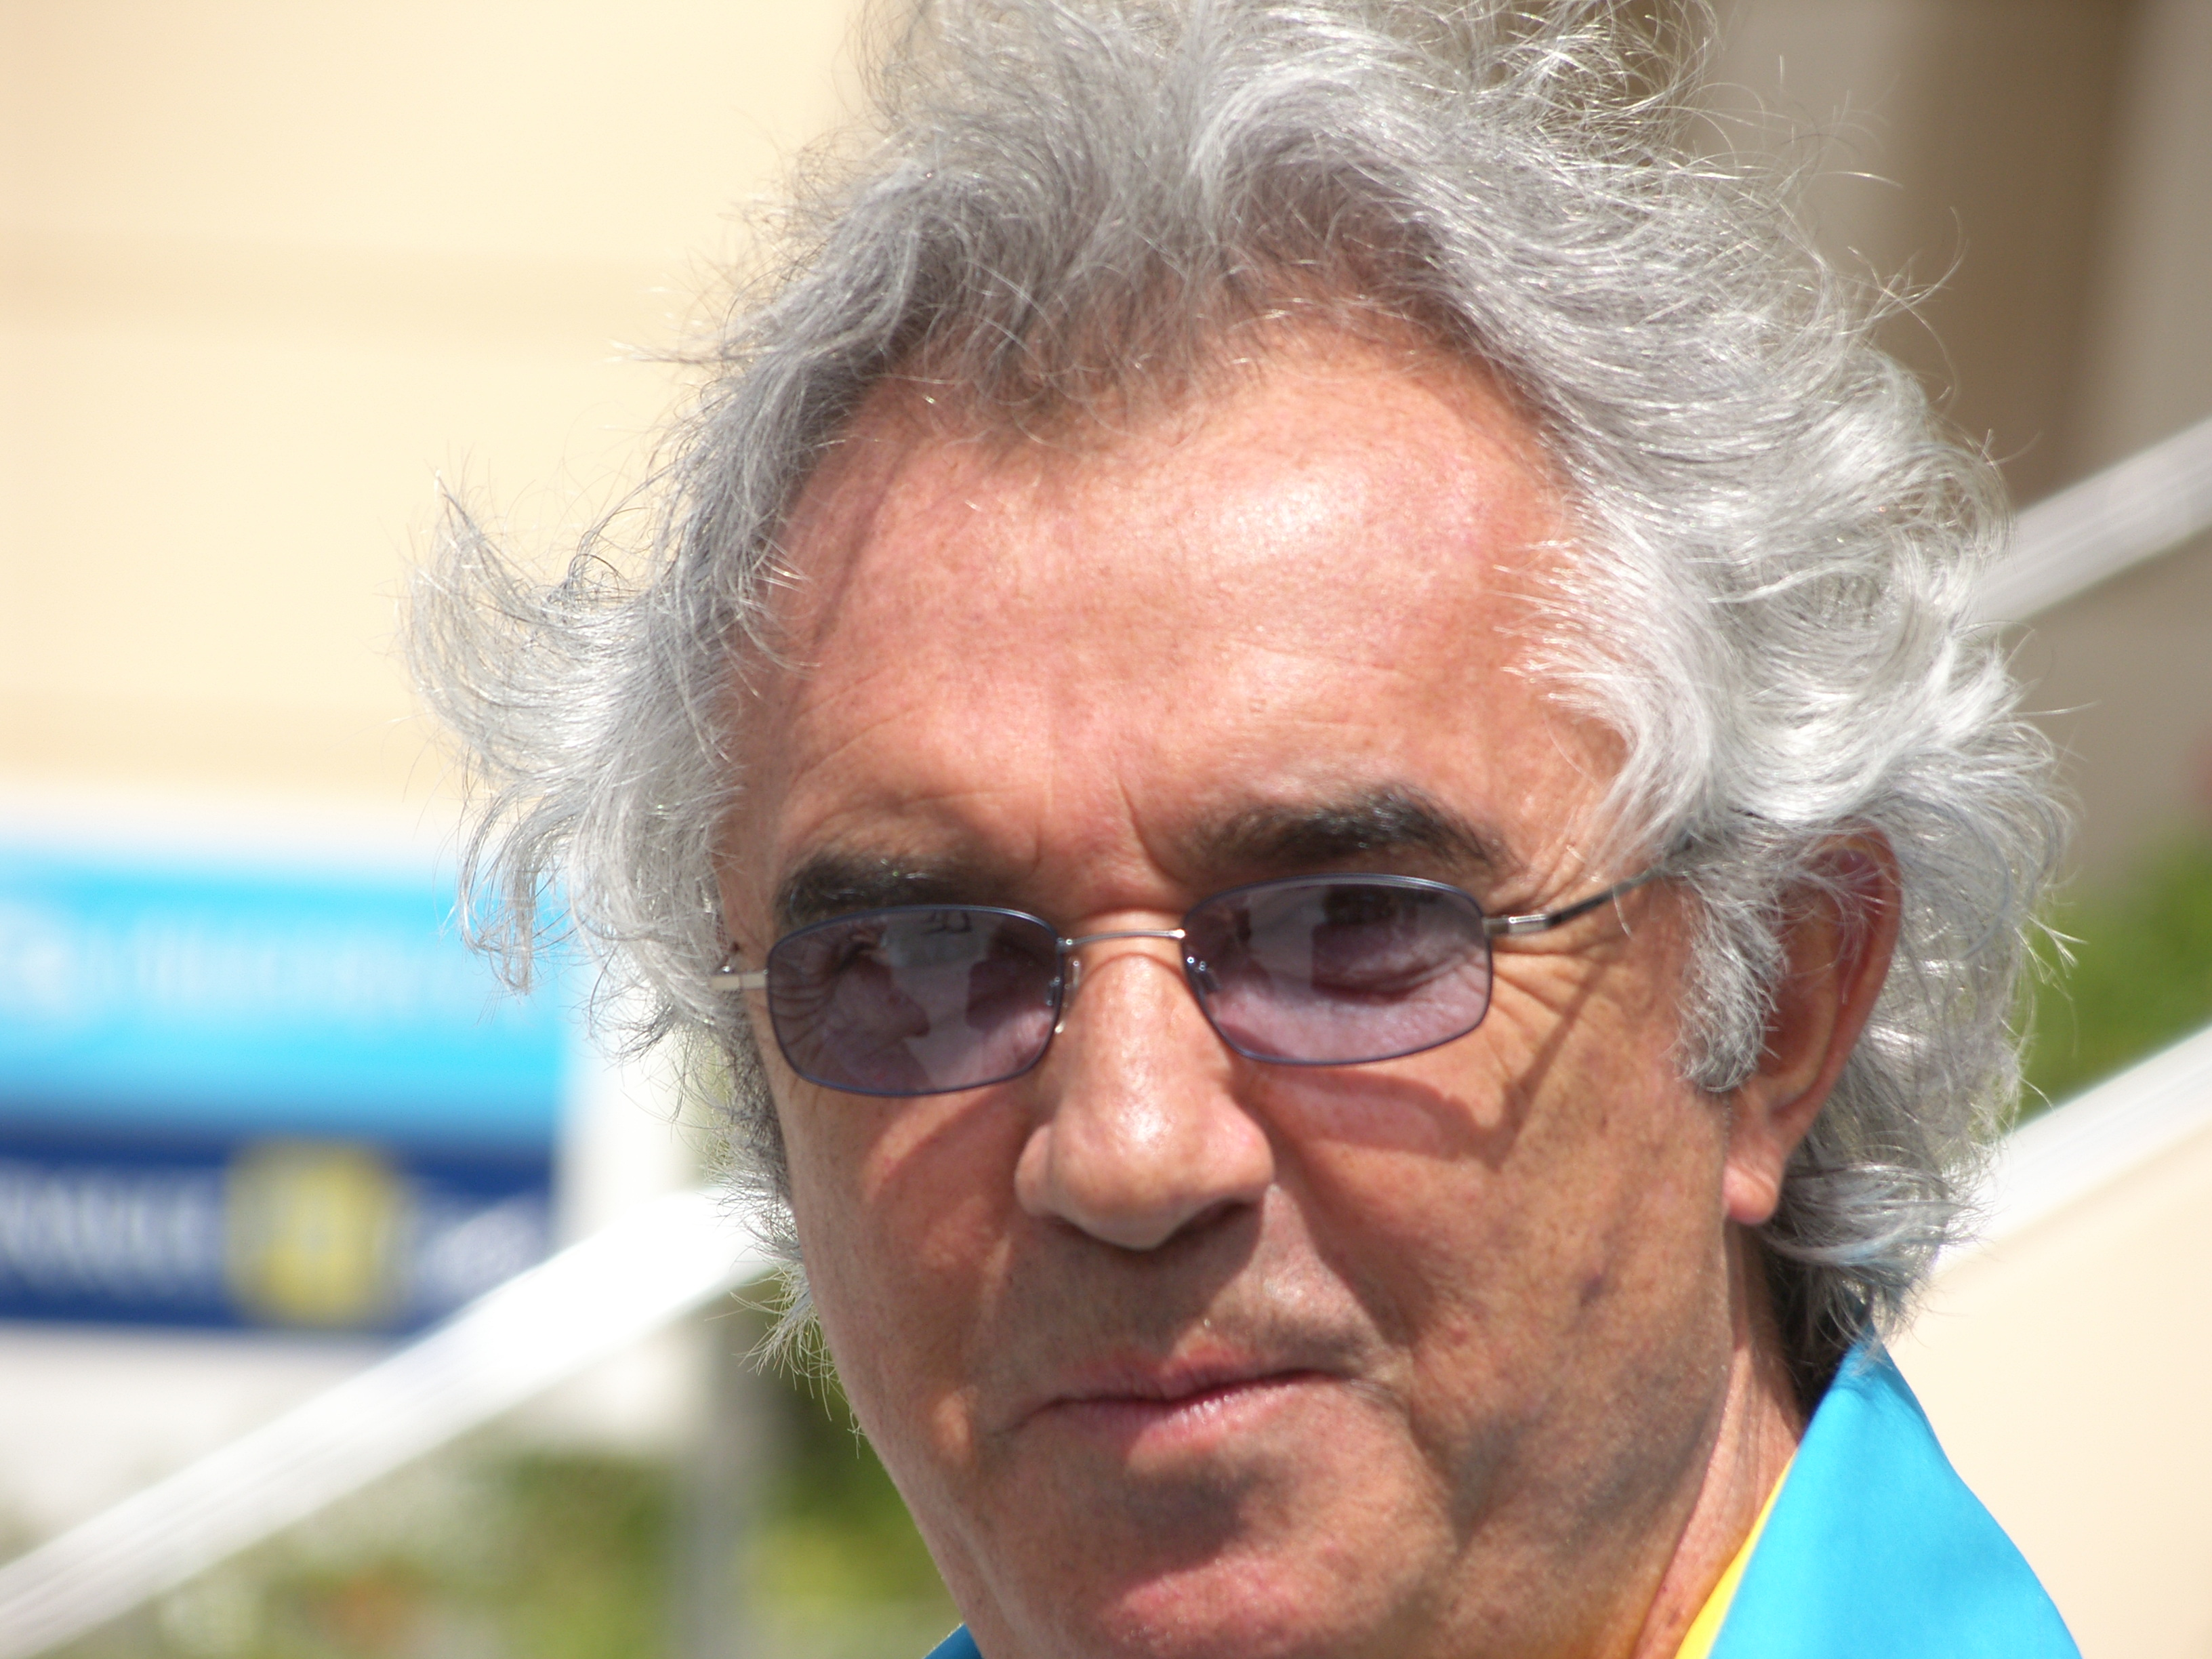 http://upload.wikimedia.org/wikipedia/commons/8/8a/Flavio_Briatore.JPG